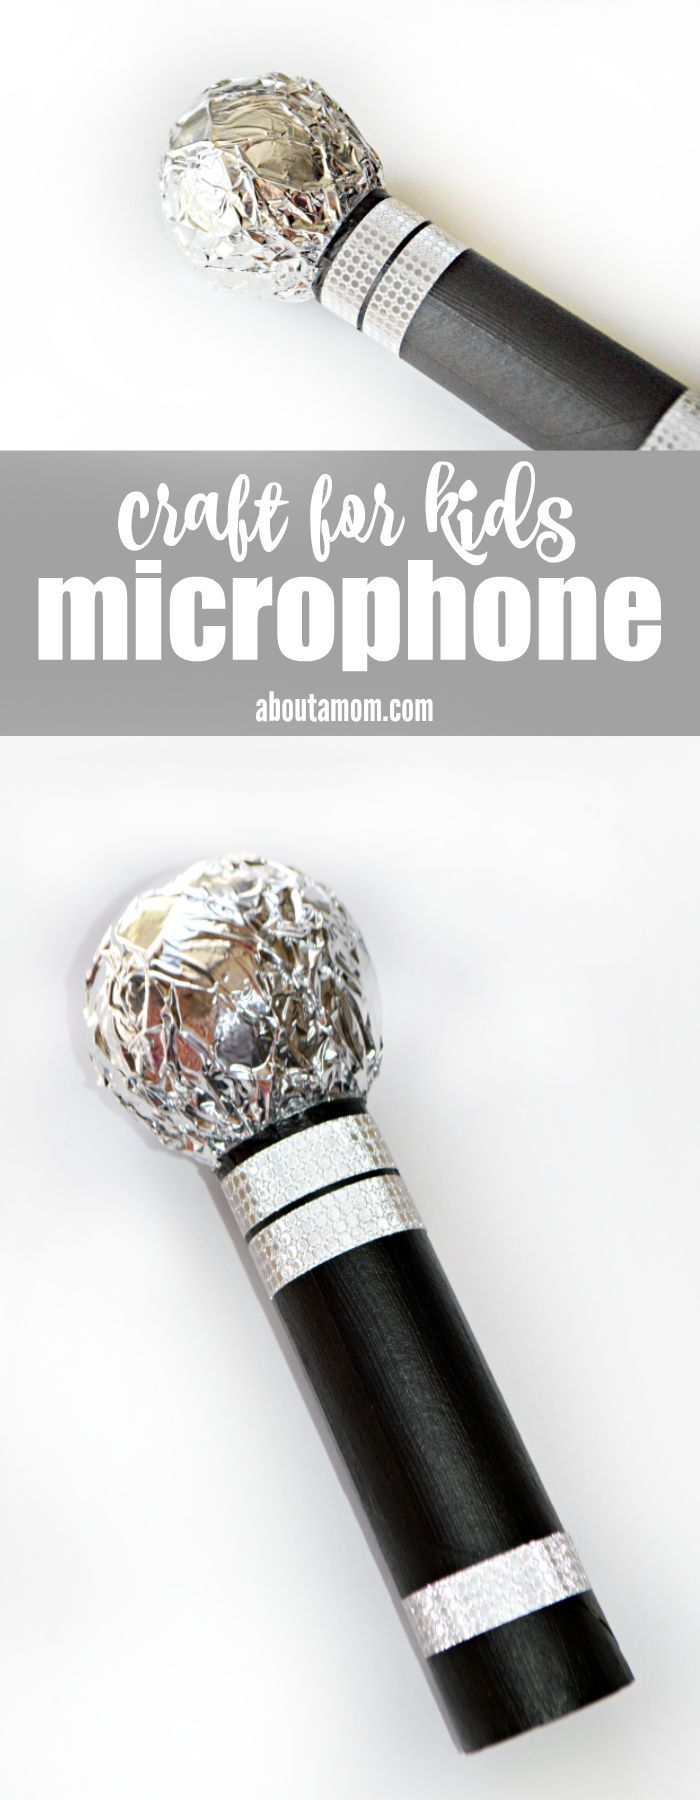 Fun microphone craft for kids.